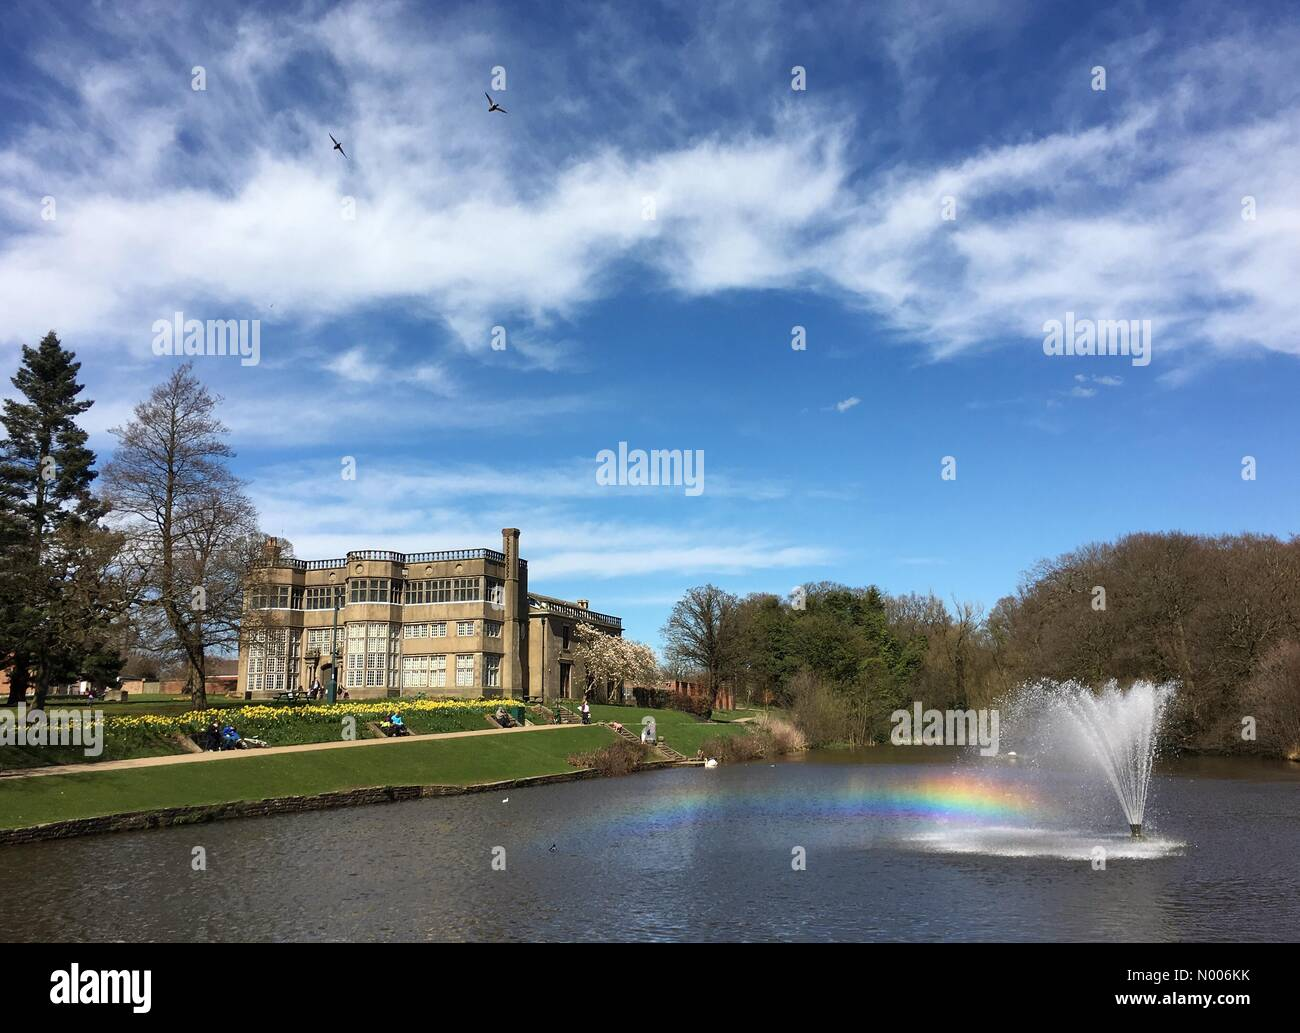 UK Weather sunny Sunday afternoon at Astley Park in Chorley, Lancashire. Rainbow cast by fountain in front of Astley - Stock Image